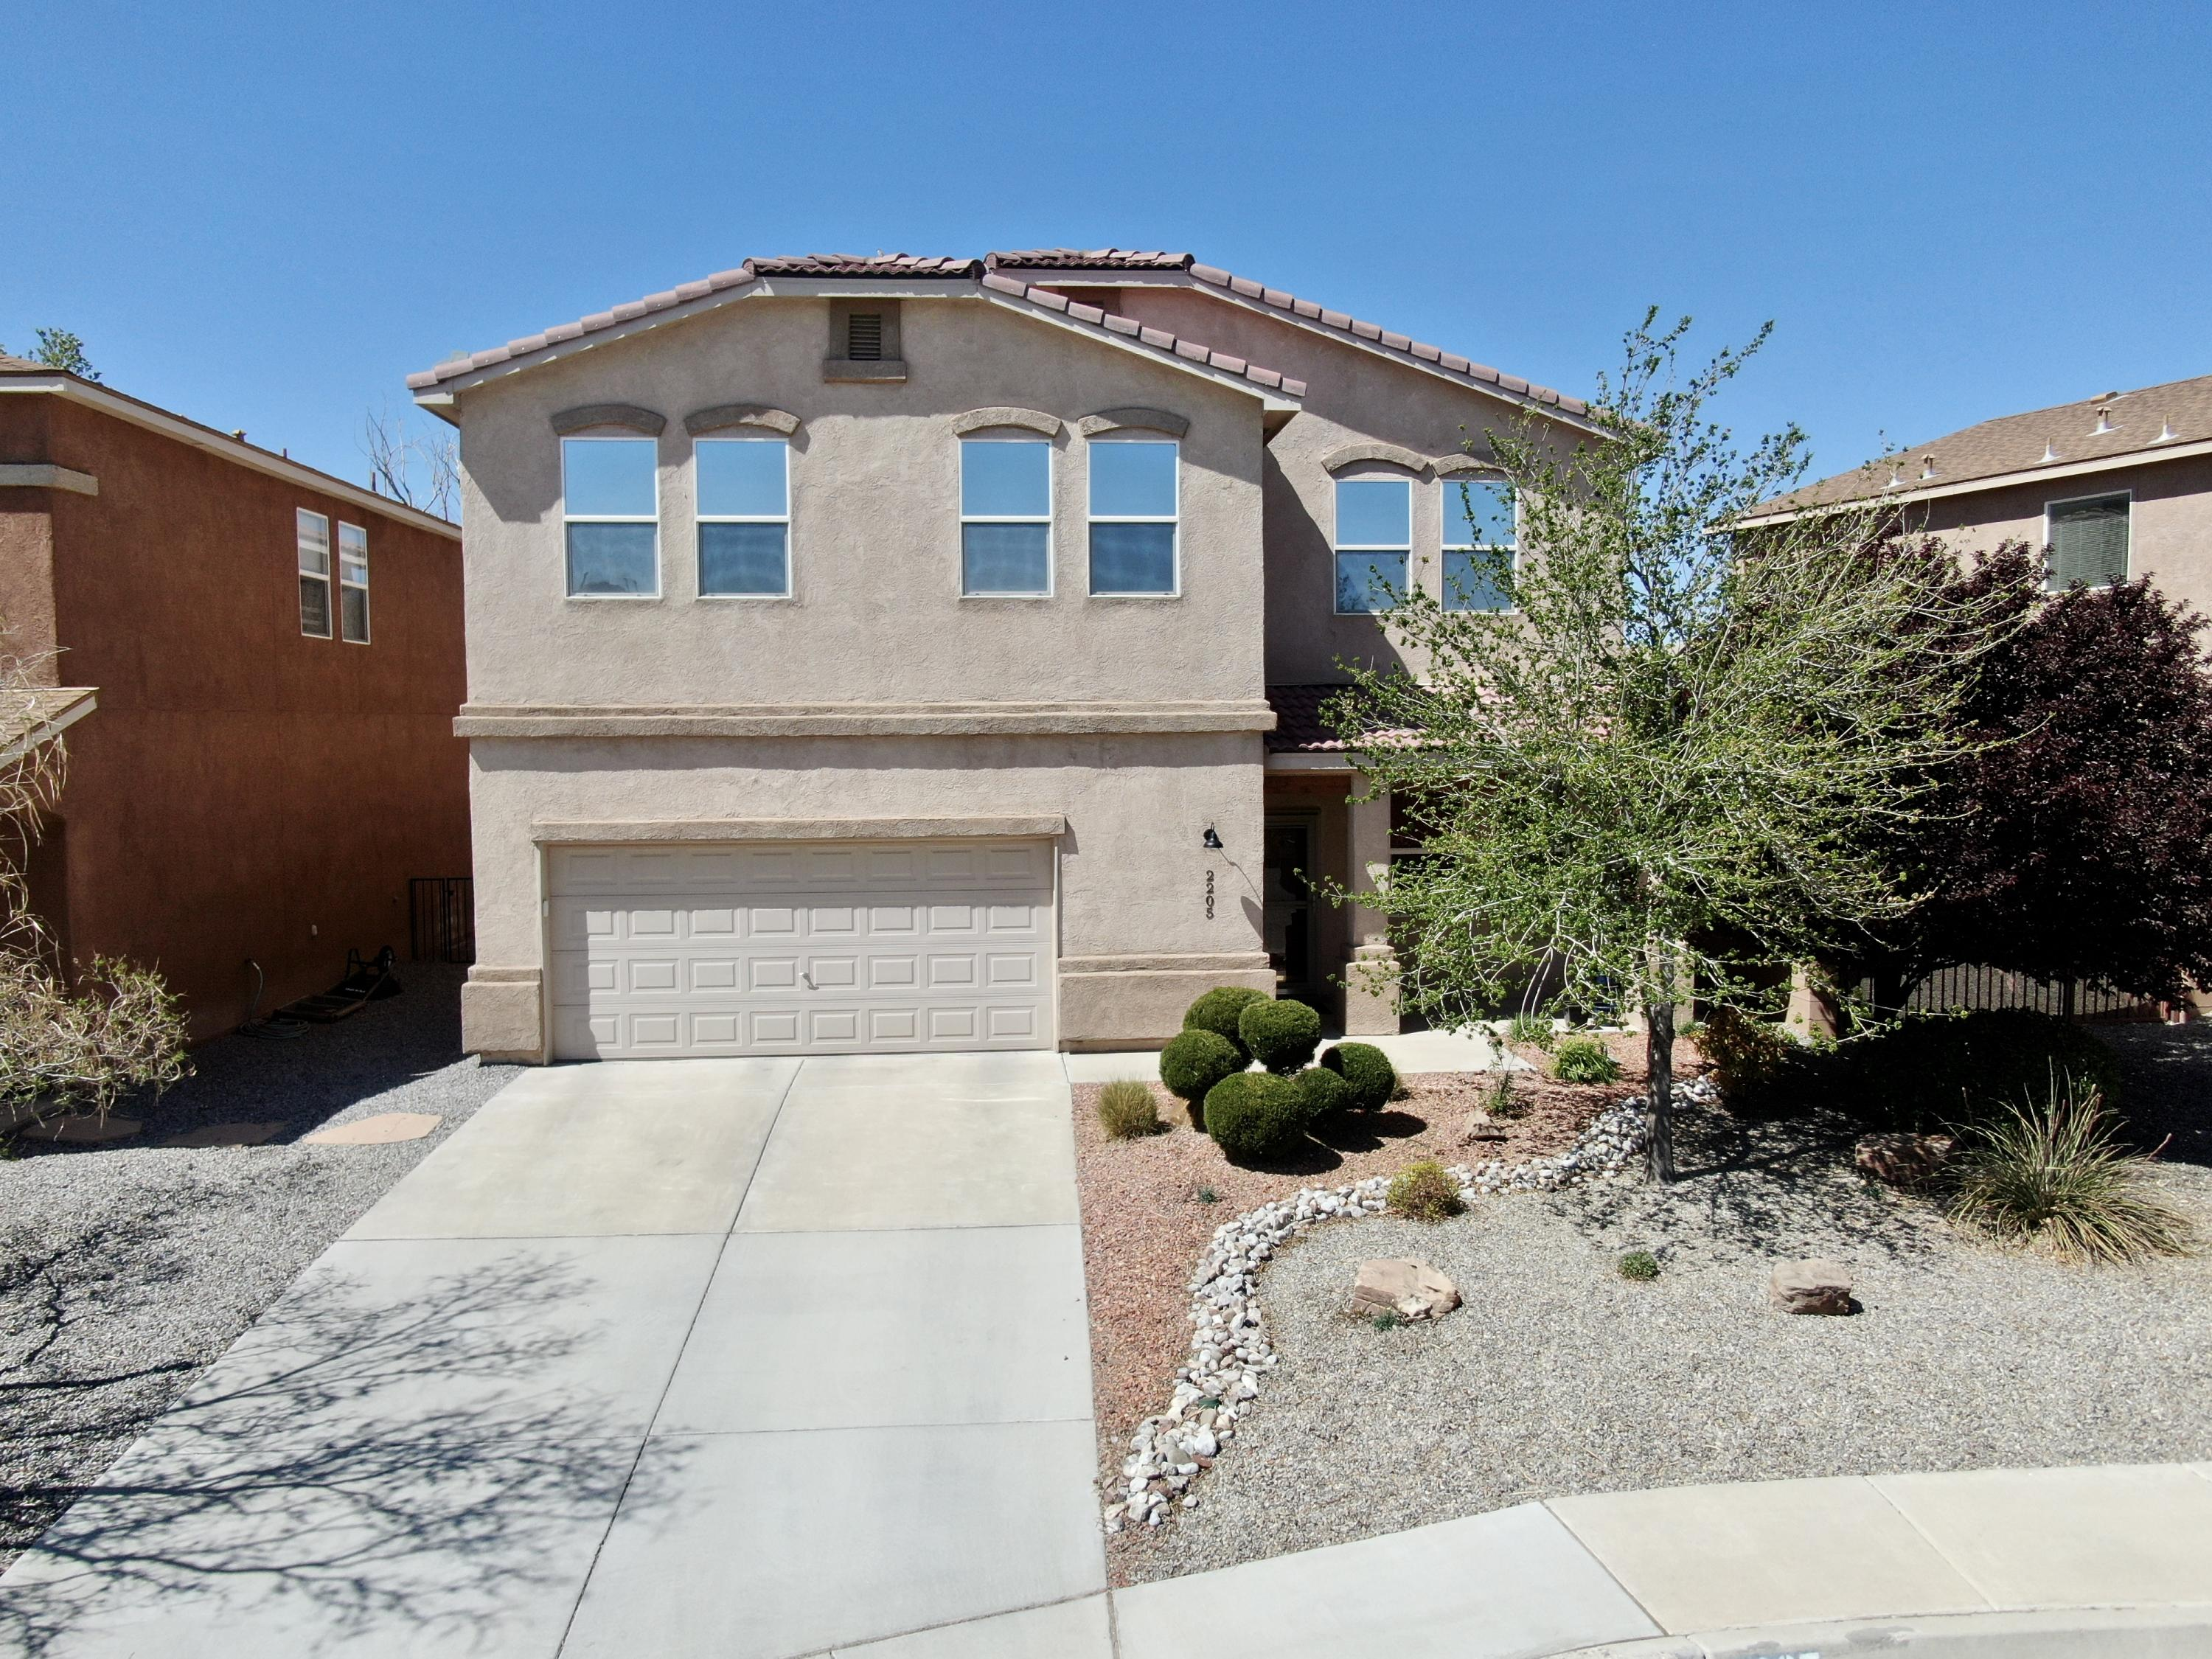 Beautifully upgraded home fully landscaped on a quiet cul-de-sac in Cabezon. Warm tones throughout. Tile throughout entire main floor. Open kitchen/dining/living room is perfect for every day living and entertaining. 42 inch maple cabinets and solid surface counters. Pull out drawers in all lower cabinets. Five large bedrooms w/ terrific closet space upstairs. Hall bath has double sinks.Master retreat has a lg adjacent bathroom with double sinks, soaking tub, separate shower and enormous walk-in closet. Ceiling fans and crown molding throughout. 2.5 car garage & tons of storage. Gorgeous backyard w/oversized patio for year round entertaining. This is a one of a kind at an amazing price! Inspections and repairs done